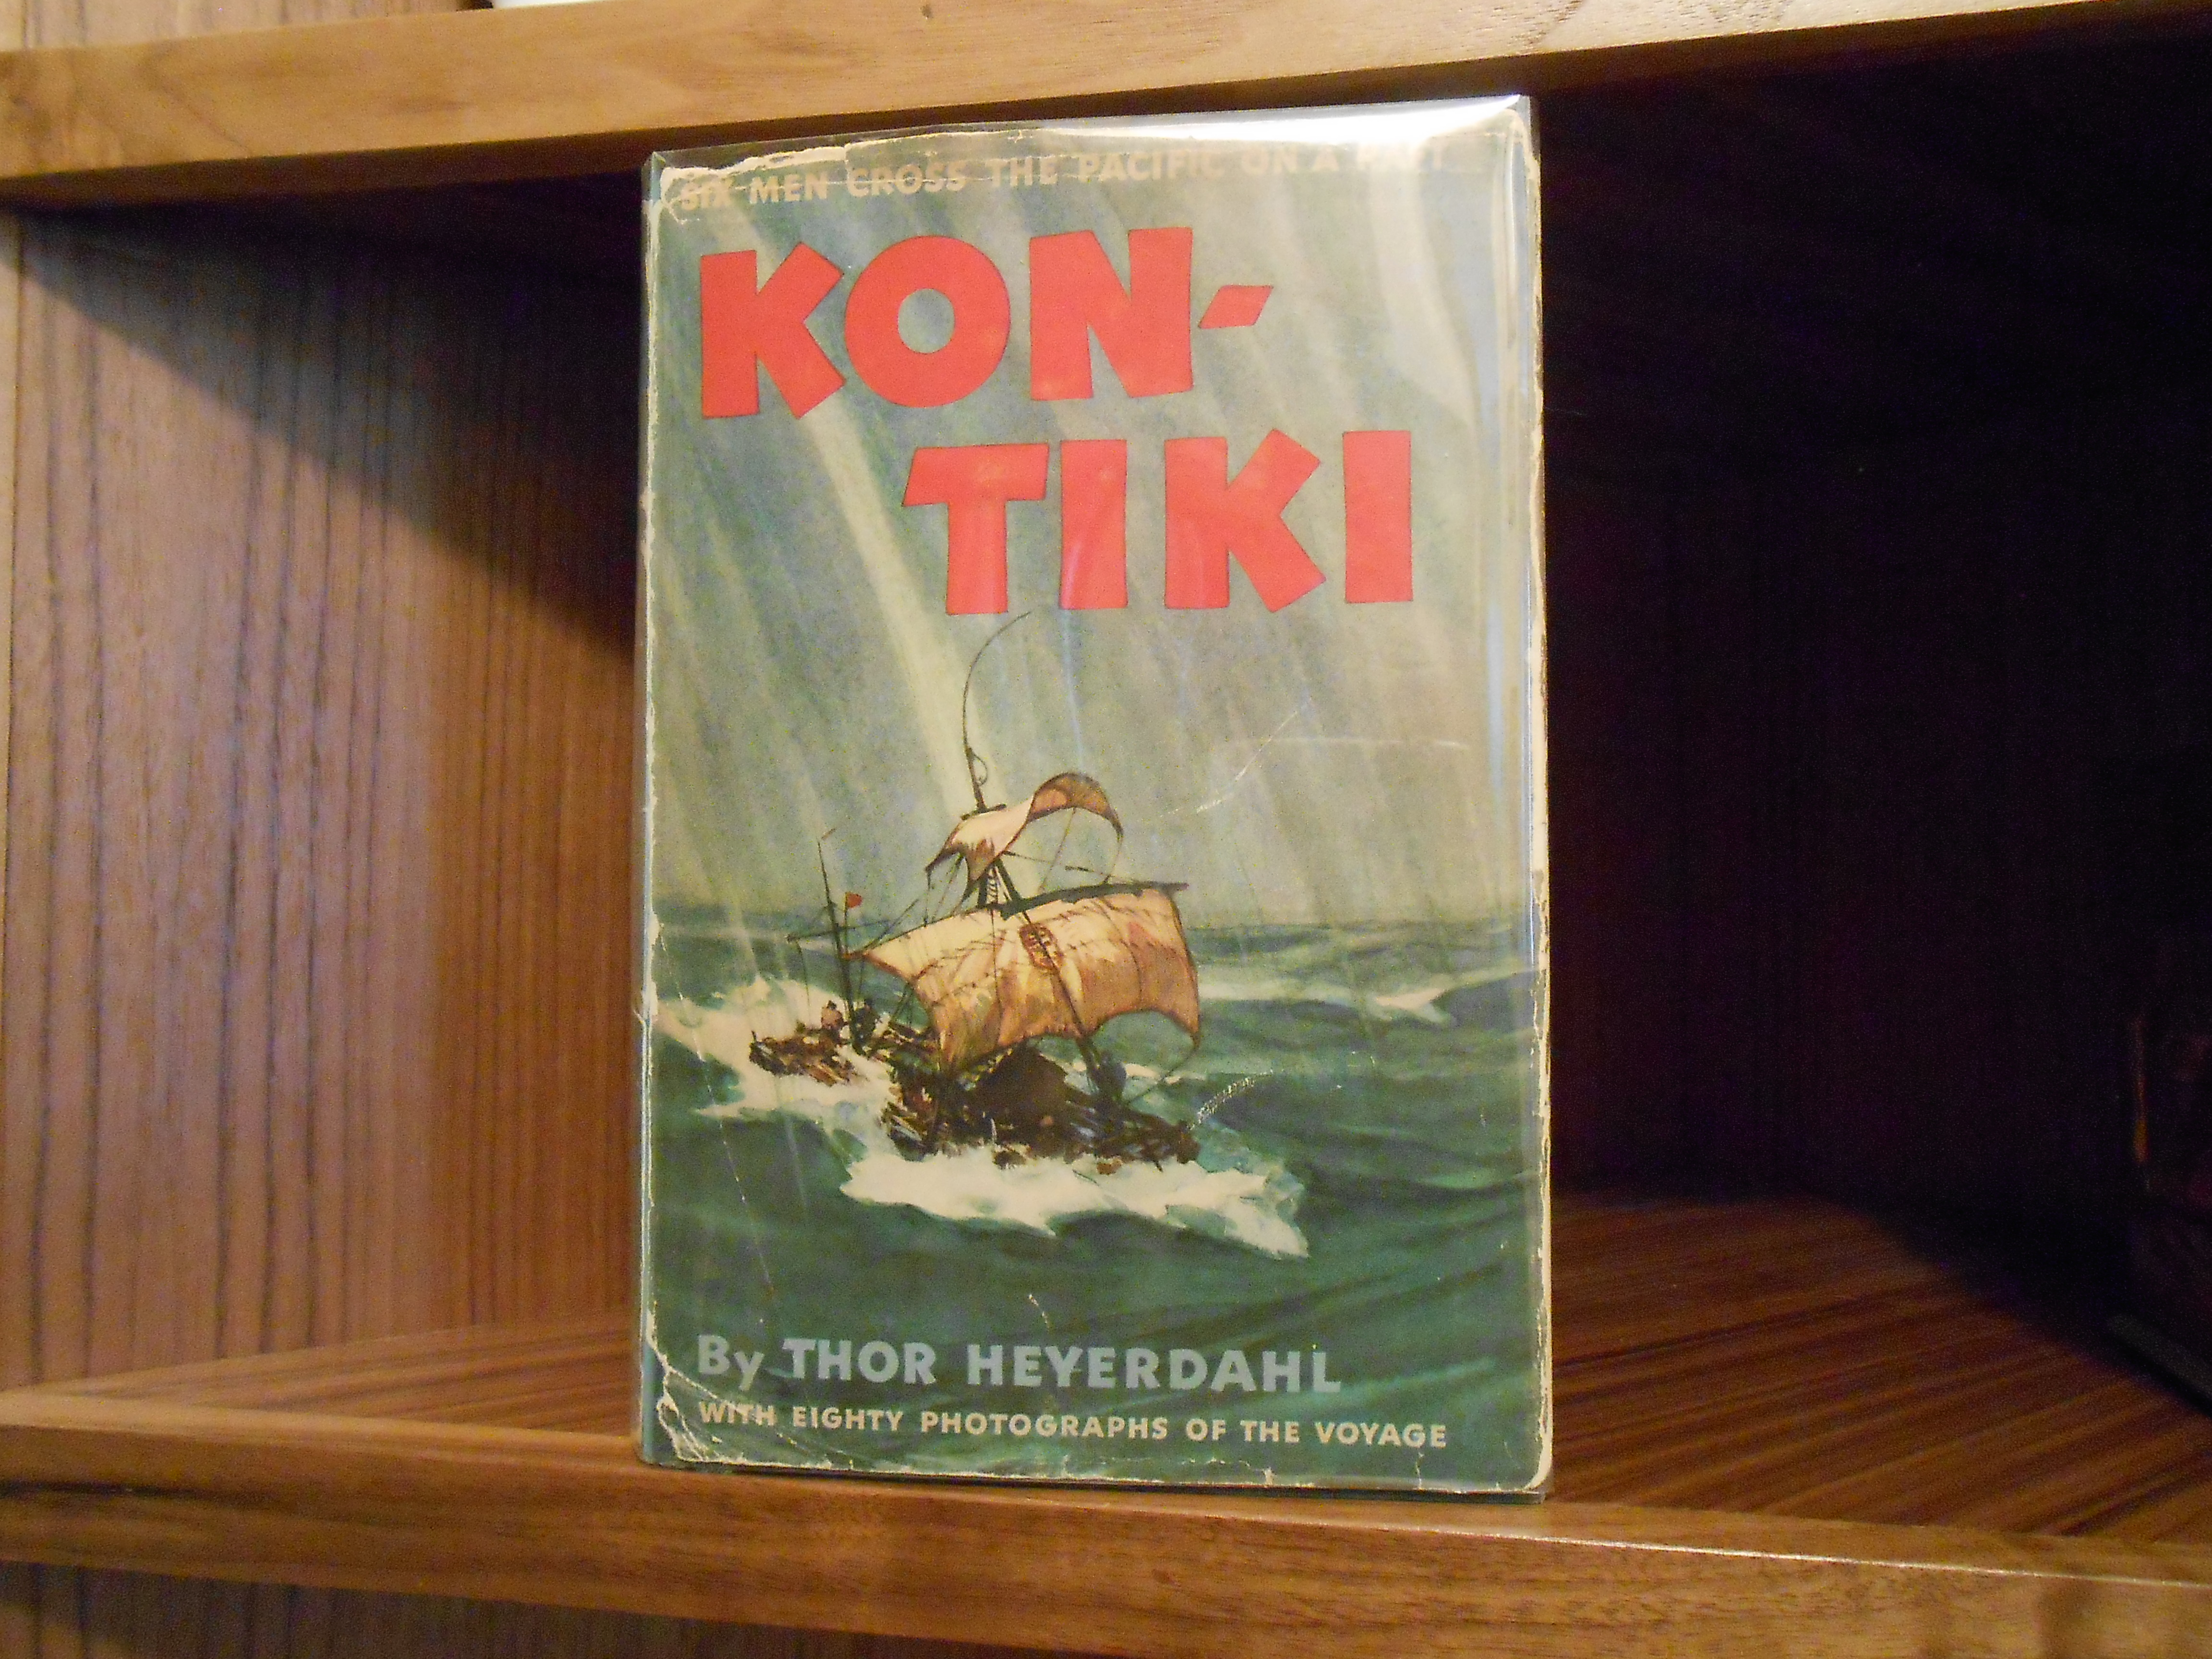 an analysis of the book kon tiki by thor heyerdahl Take a trip and find the truth in nature six scandinavians take a raft (not a boat) from peru to polynesia listen to their story this is an awesome book f.